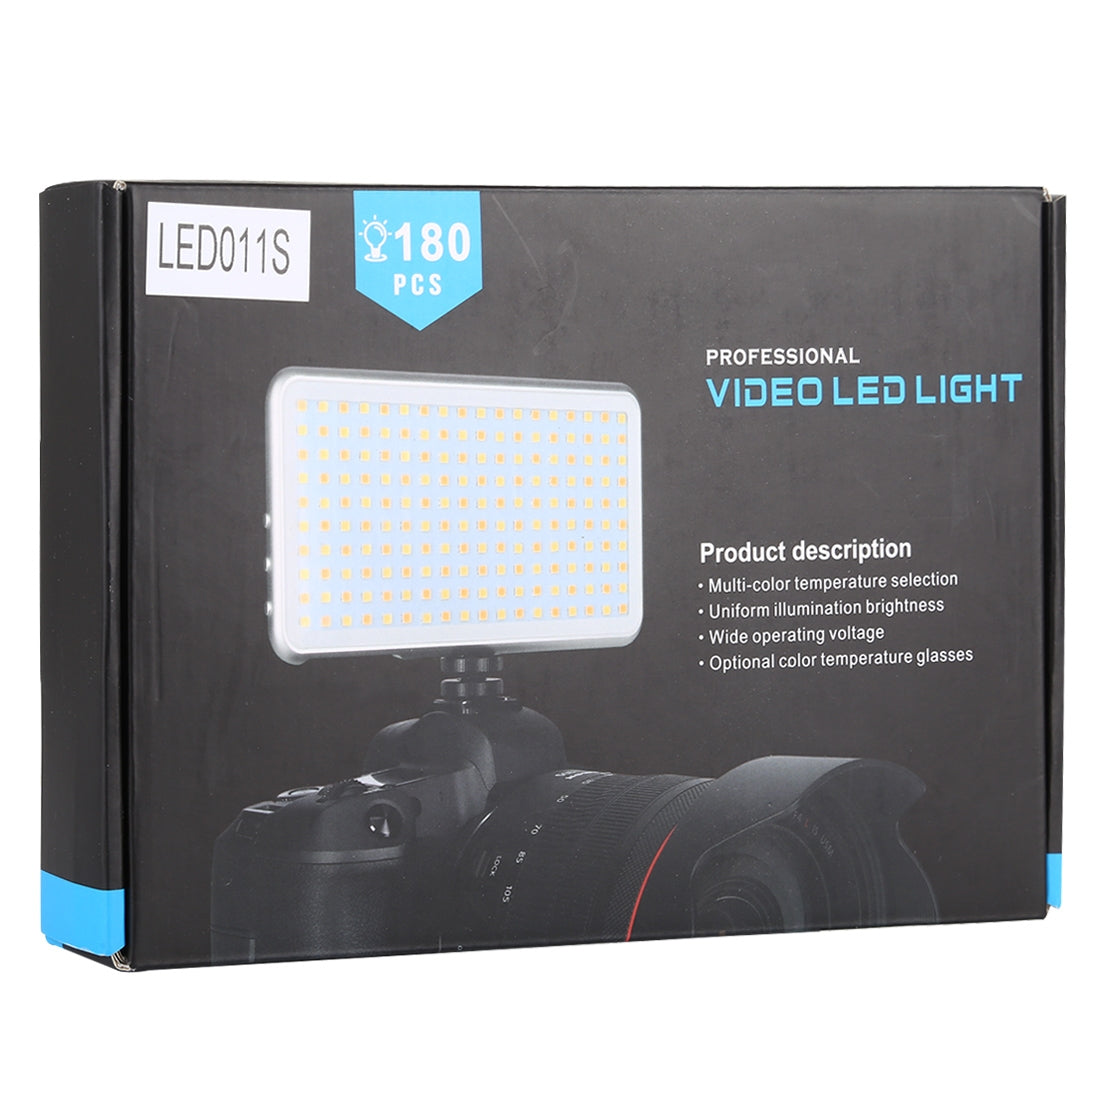 LED011S Pocket 180 LEDs Professional Vlogging Photography Video & Photo Studio Light with OLED Display & Cold Shoe Adapter Mount f